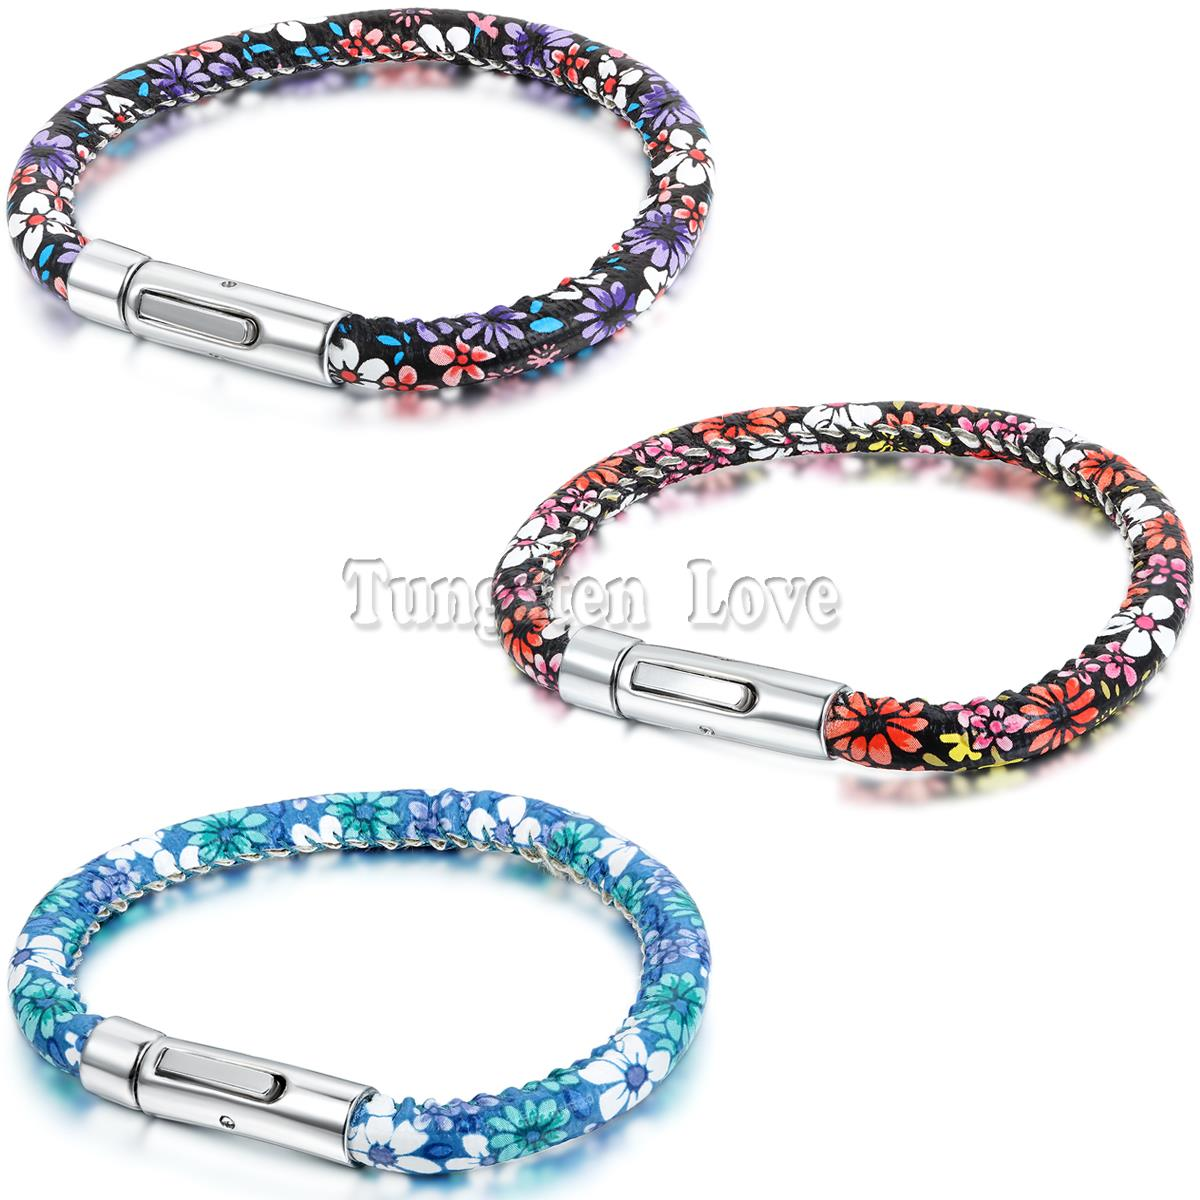 New Arrival Fashion Jewelry PU Leather Bracelet Colorful Flowers Bracelets For Women Best Friend Gift pulseira masculina couro(China (Mainland))